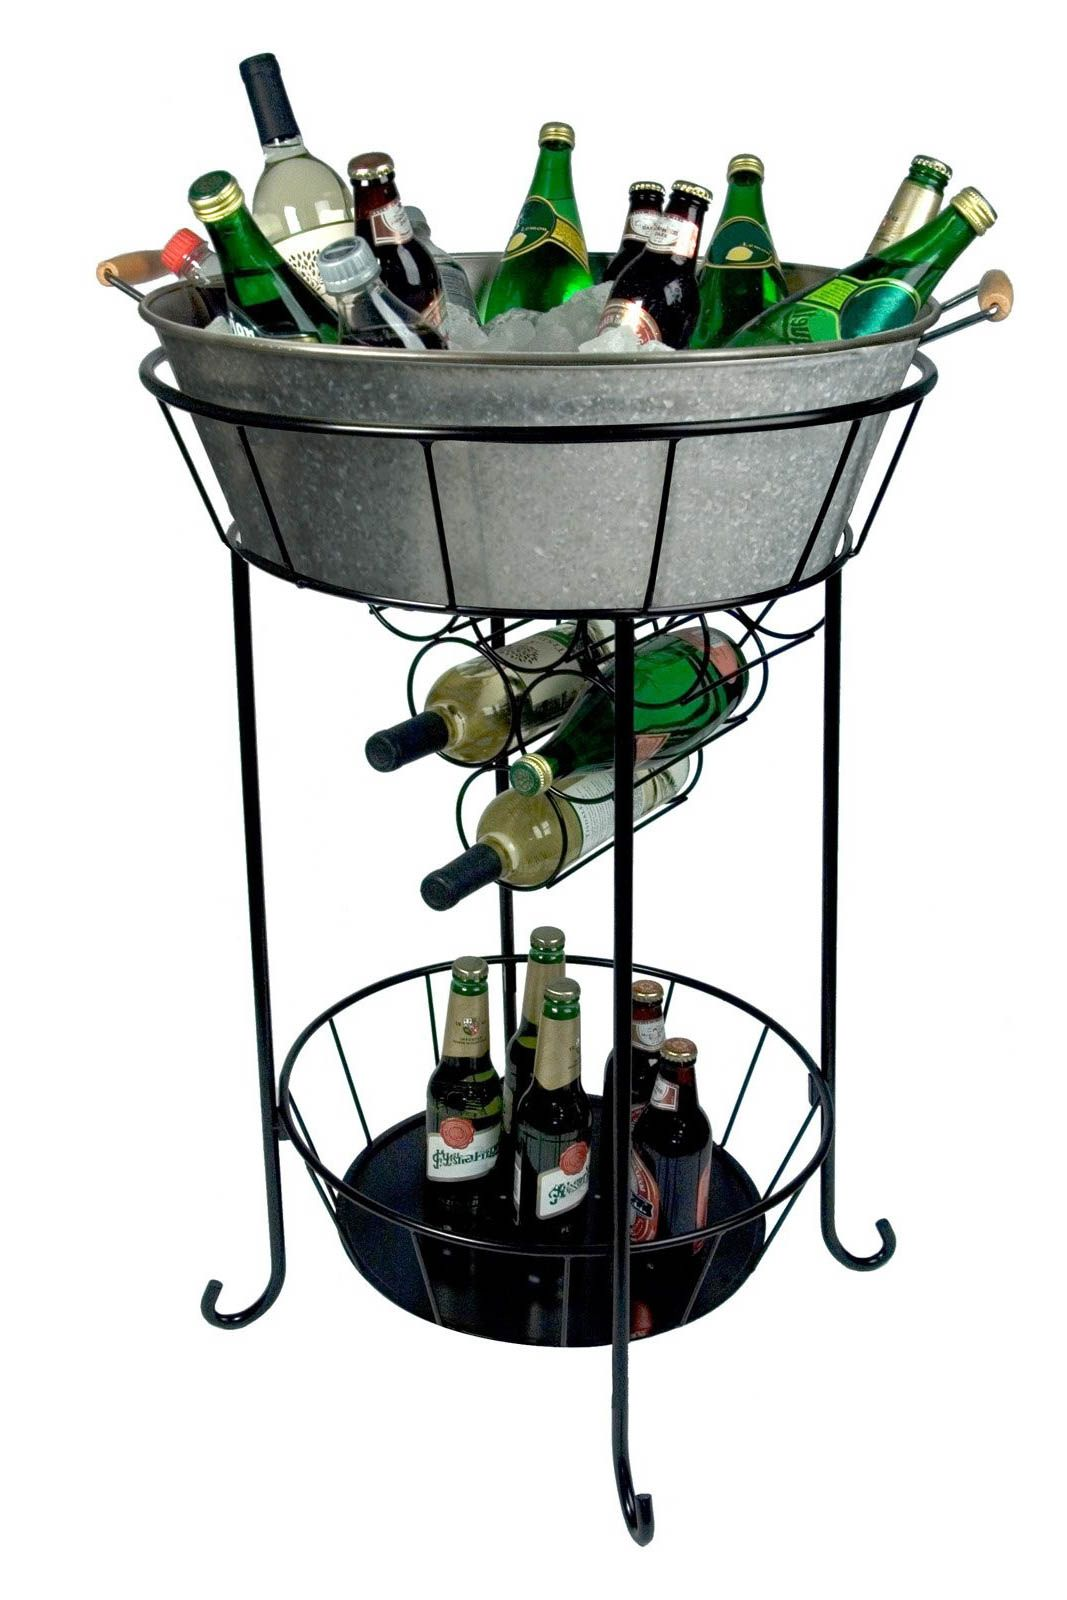 Classic Hostess Has The Hottest Home Goods Love This Site Party Tub Party Stations Beverage Tub